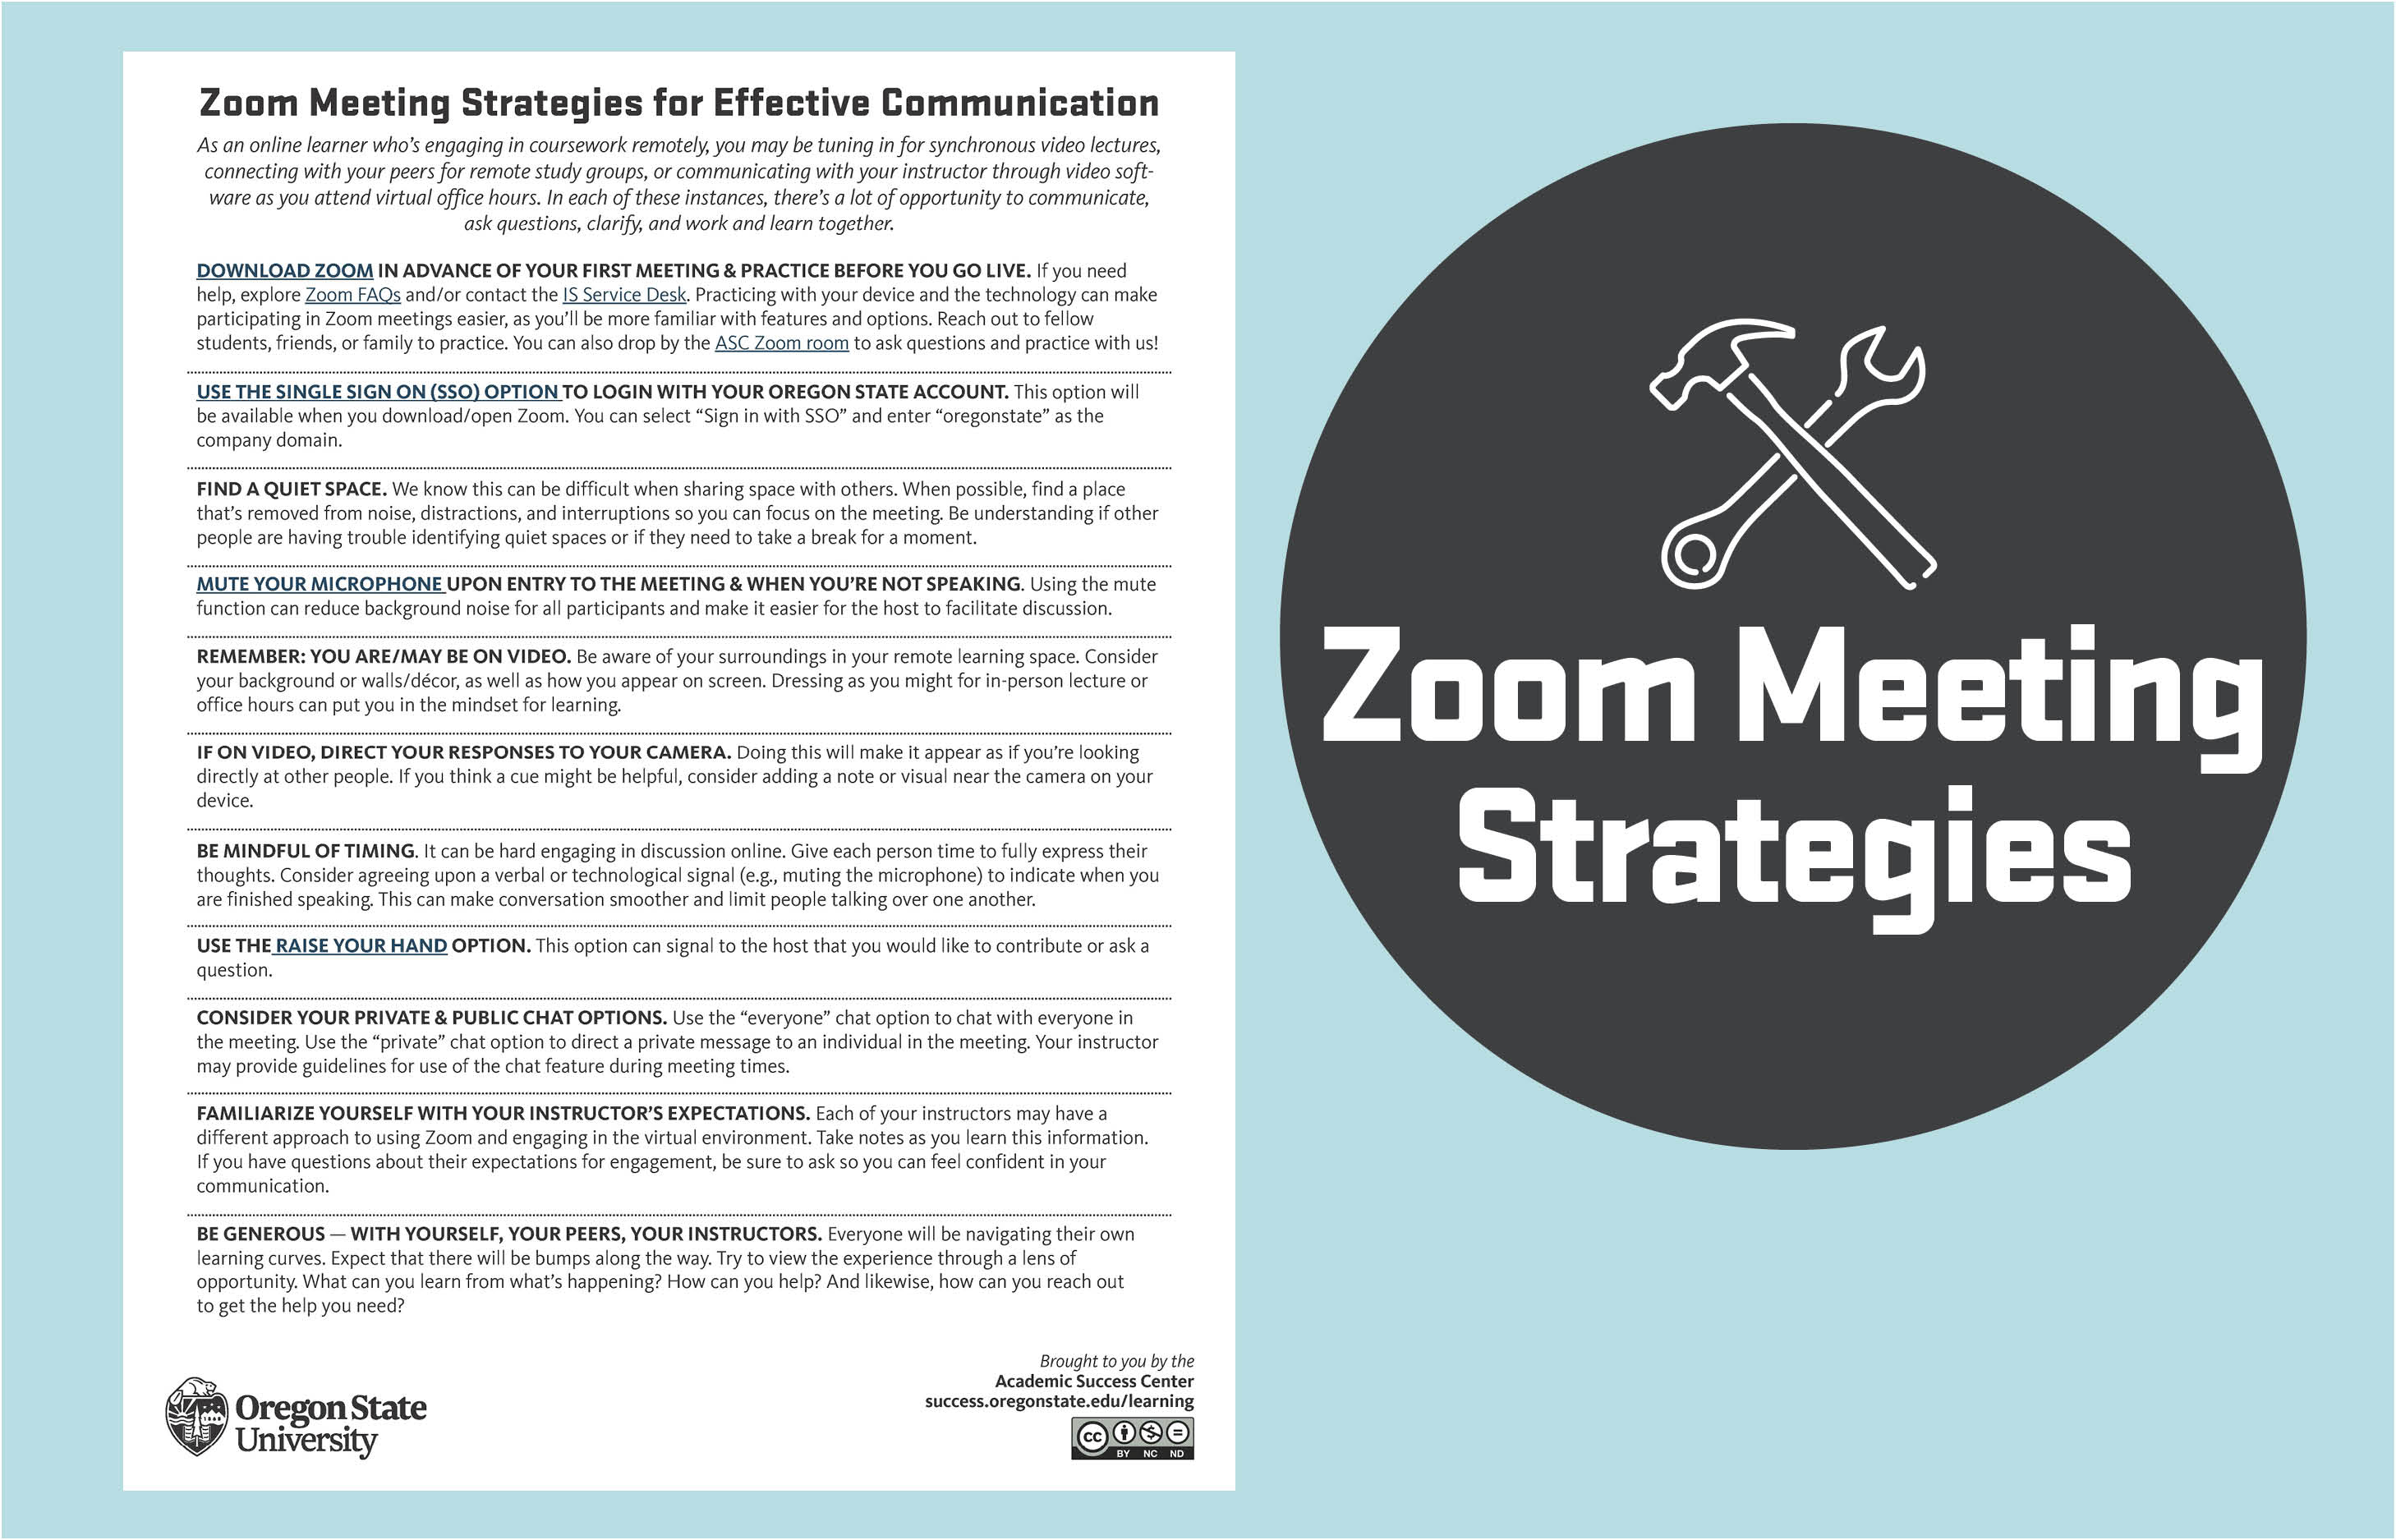 Zoom Meeting Strategies for Effective Communication